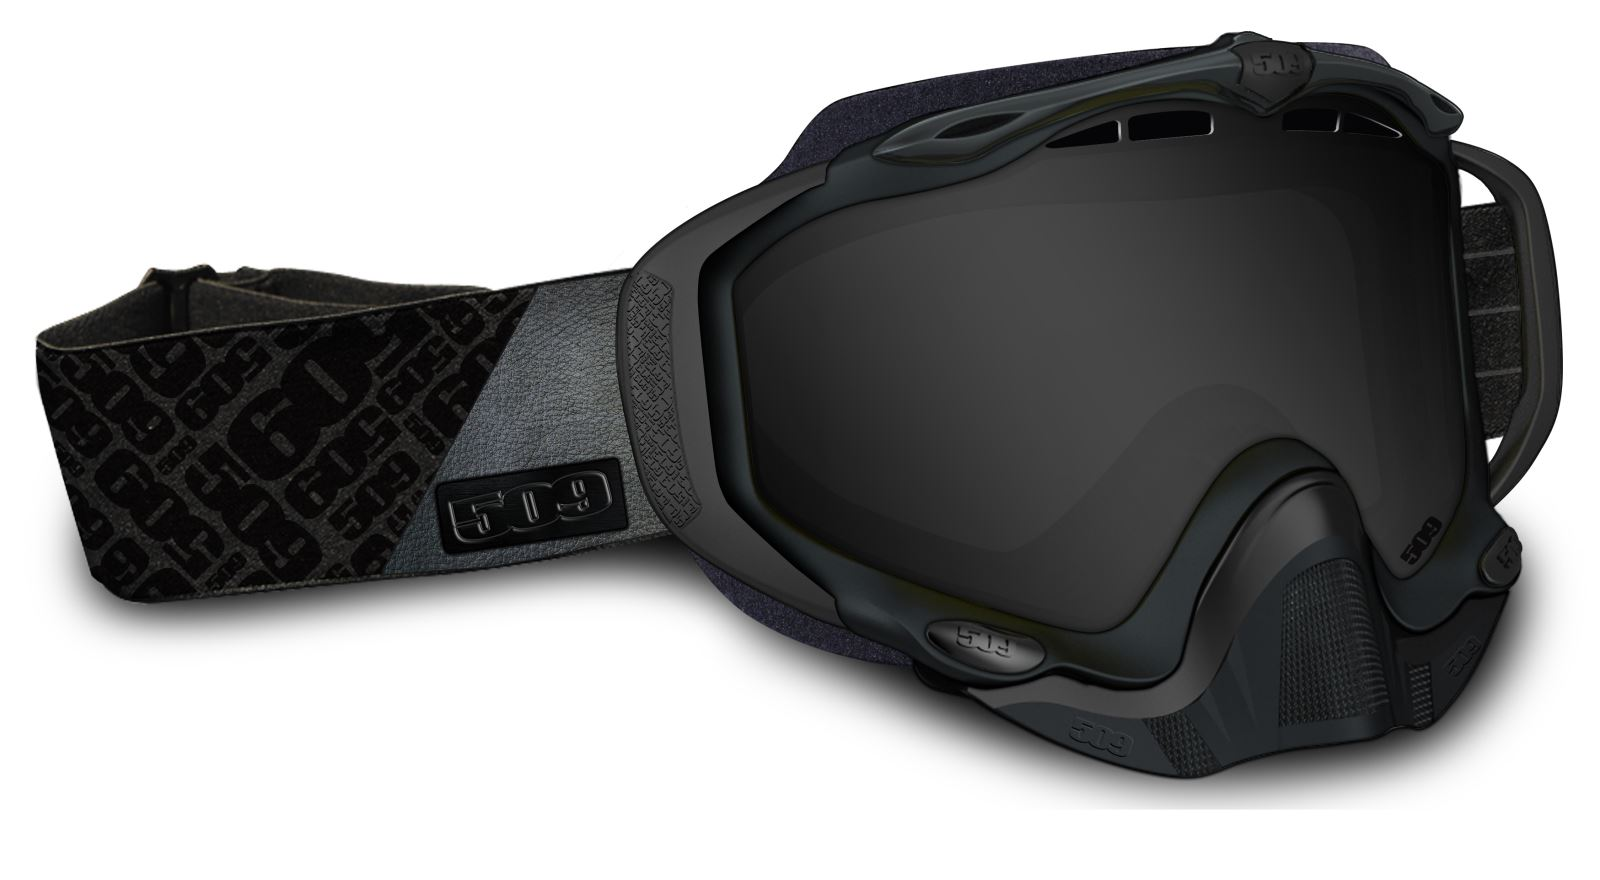 2b327c1119 509 Releases New Sinister X5 Goggle